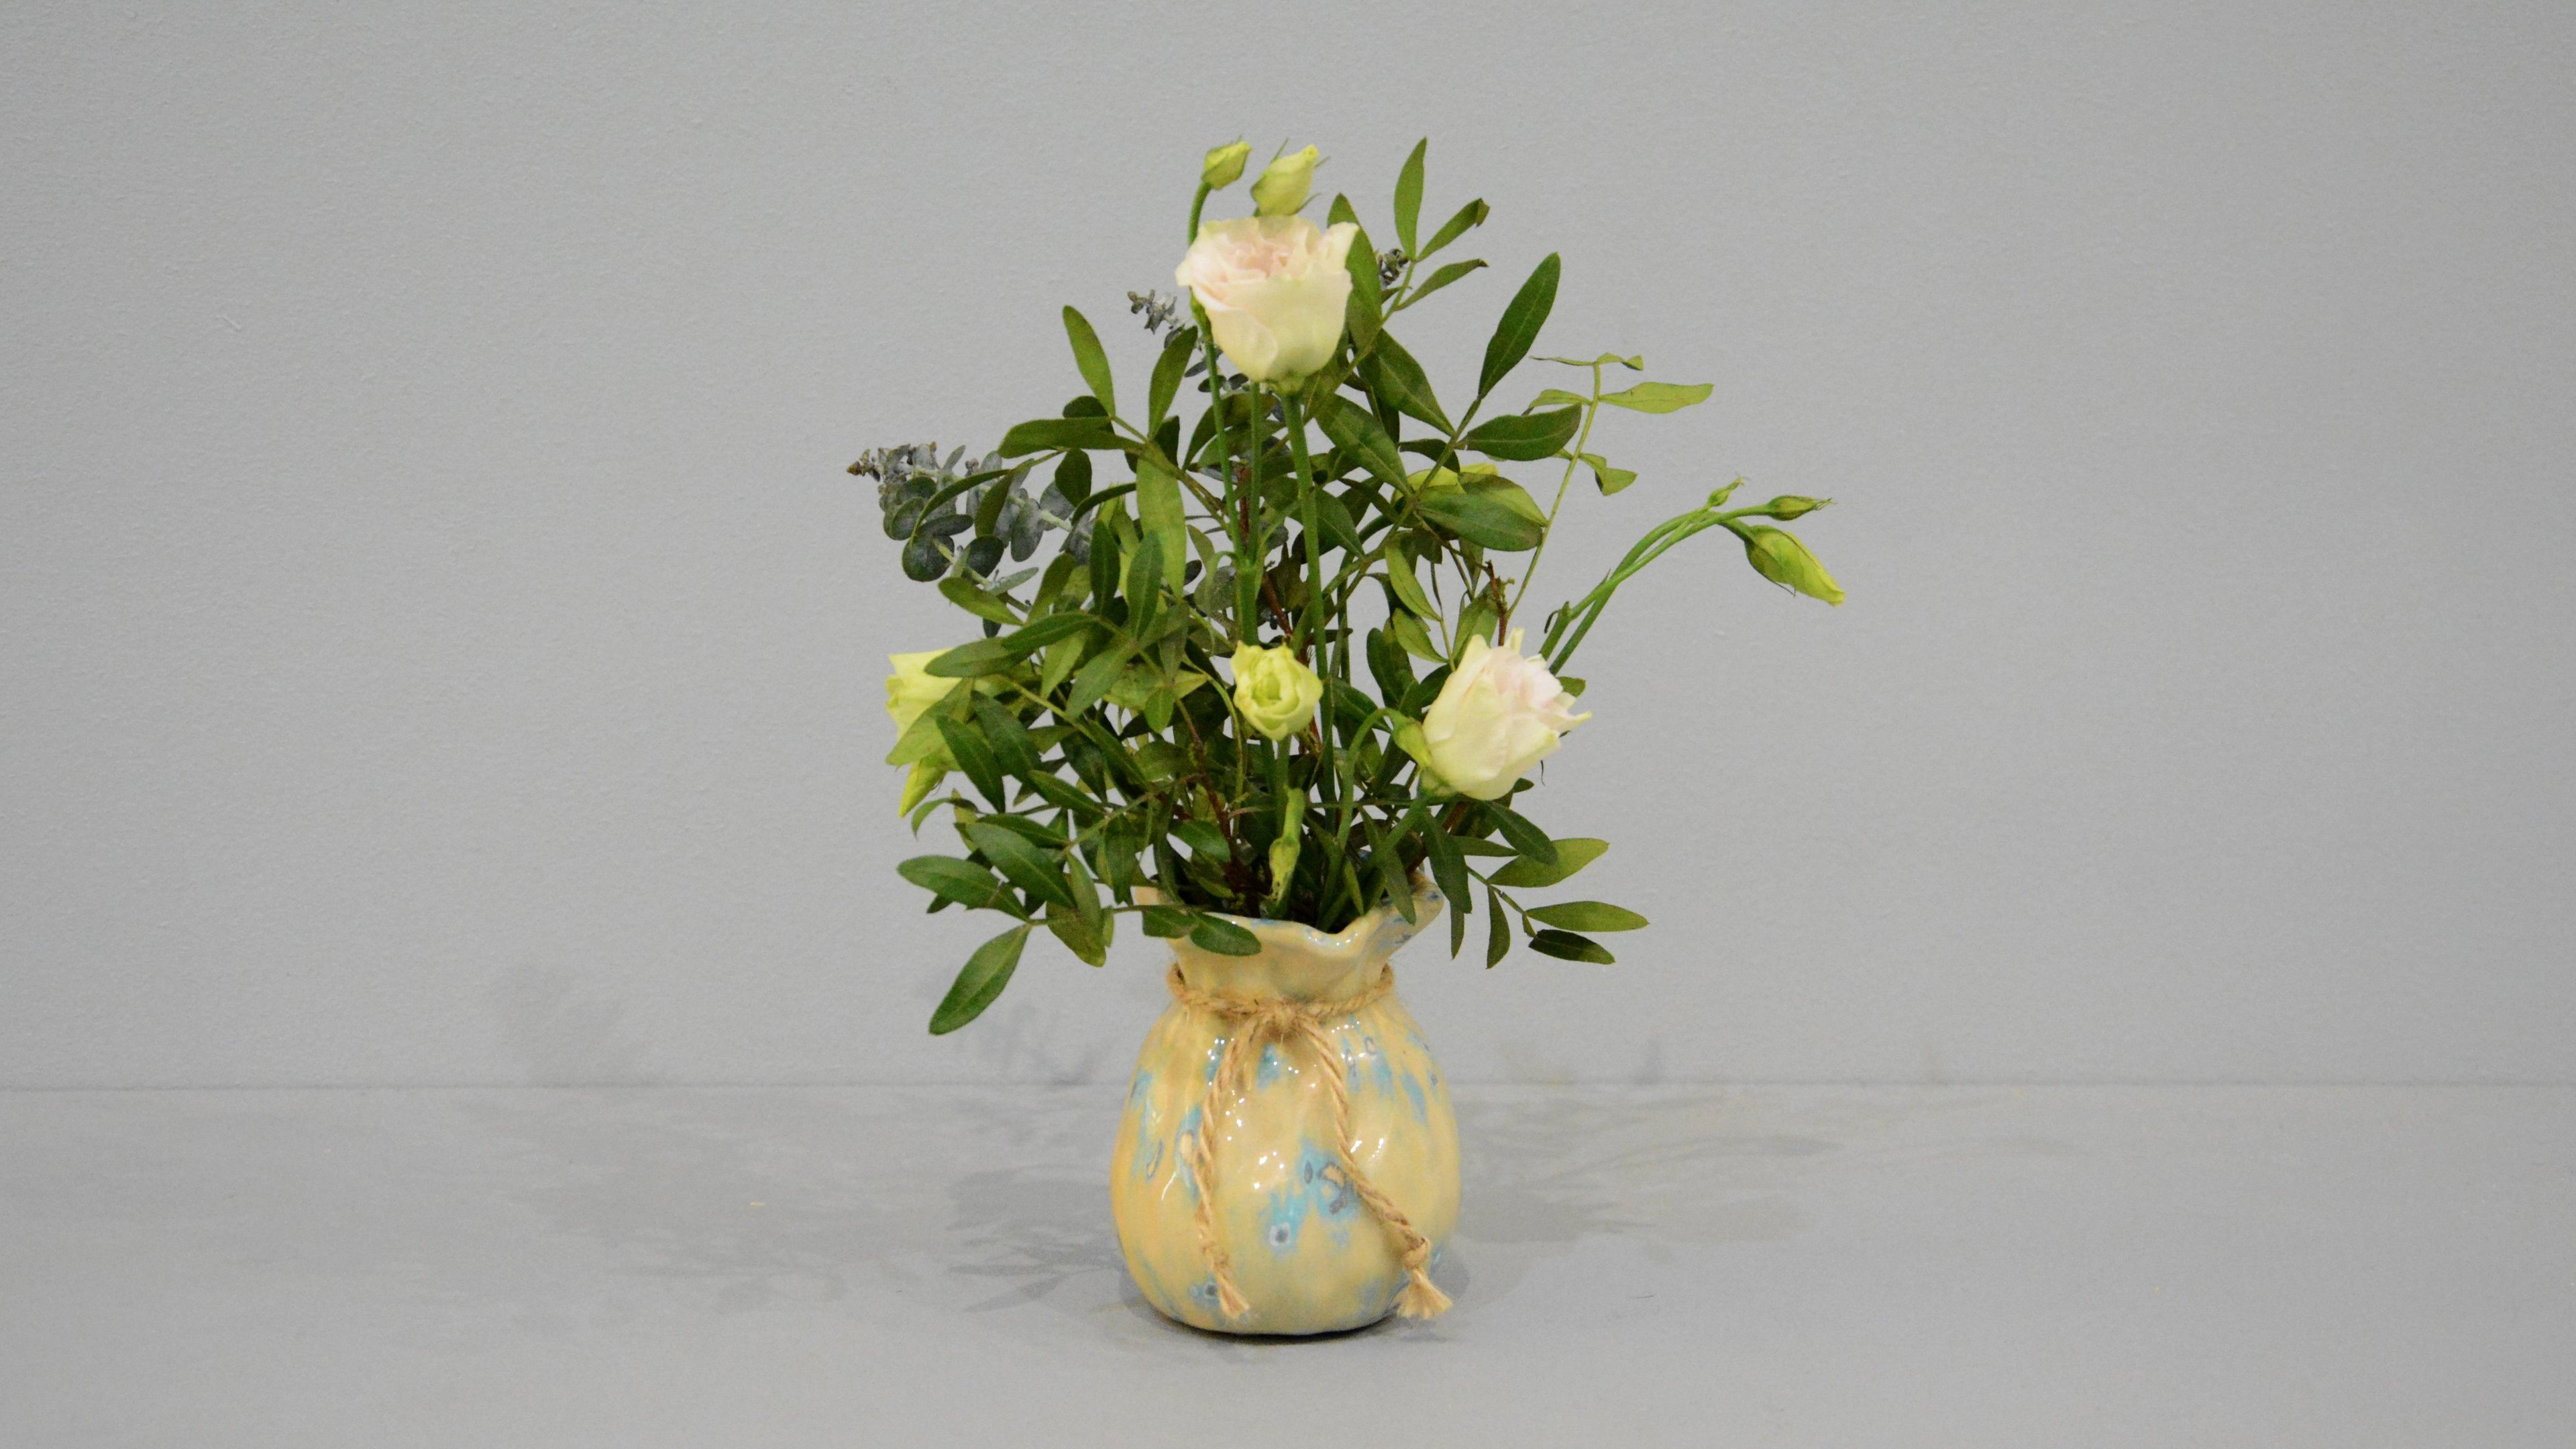 Small Vase or flowers «Beige Bagful», height - 9 cm, color - beige. Photo 1413-3840-2160.